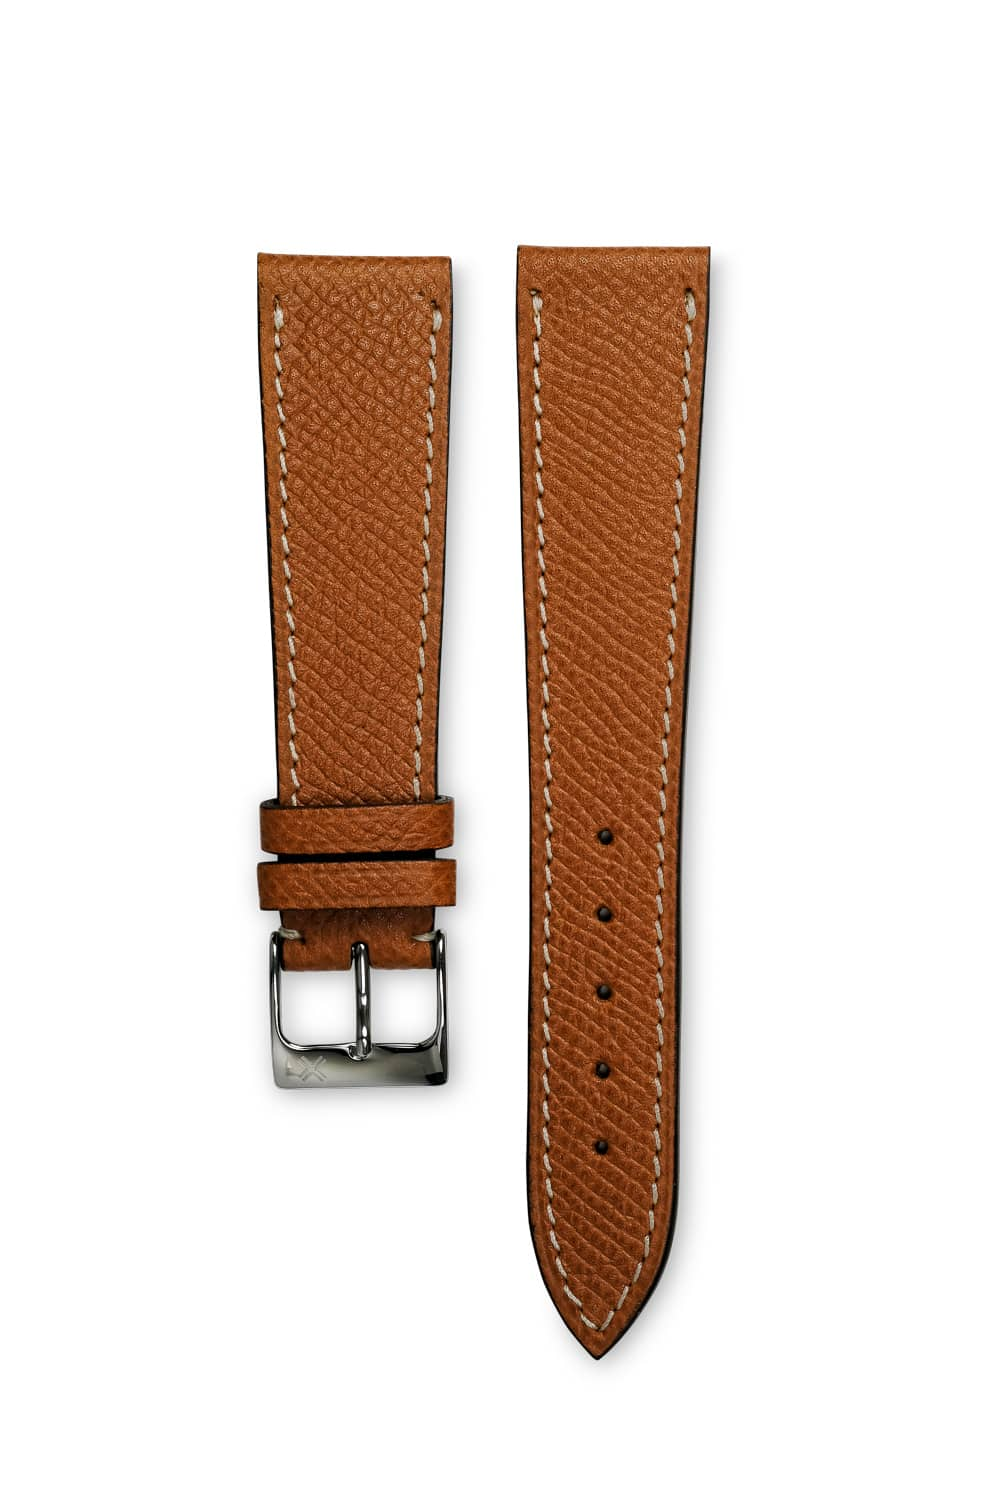 108b3a1d6 Grained light brown tan leather watch strap - cream stitching - LUGS brand